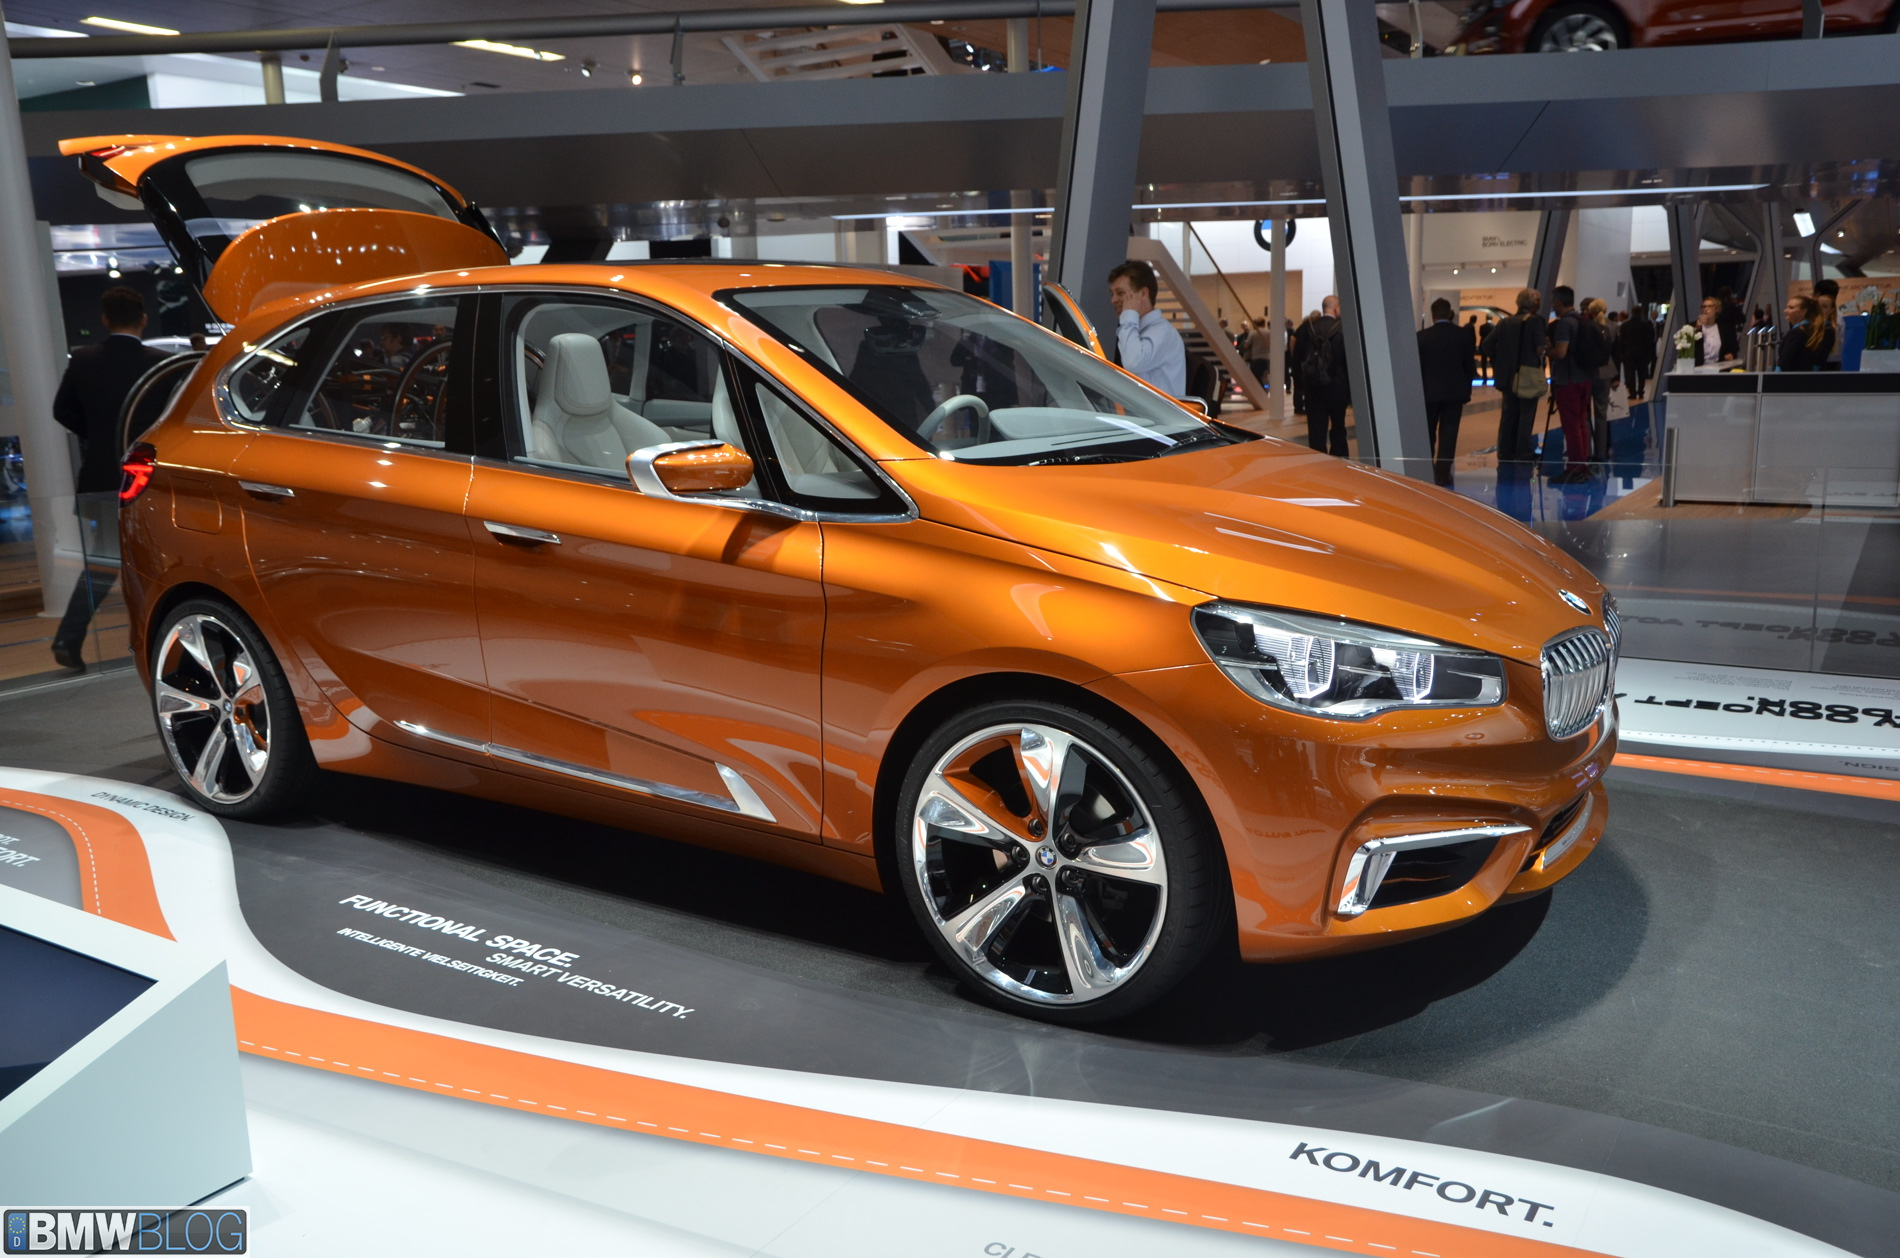 How And Why Is The Active Tourer Getting The 2 Series Name